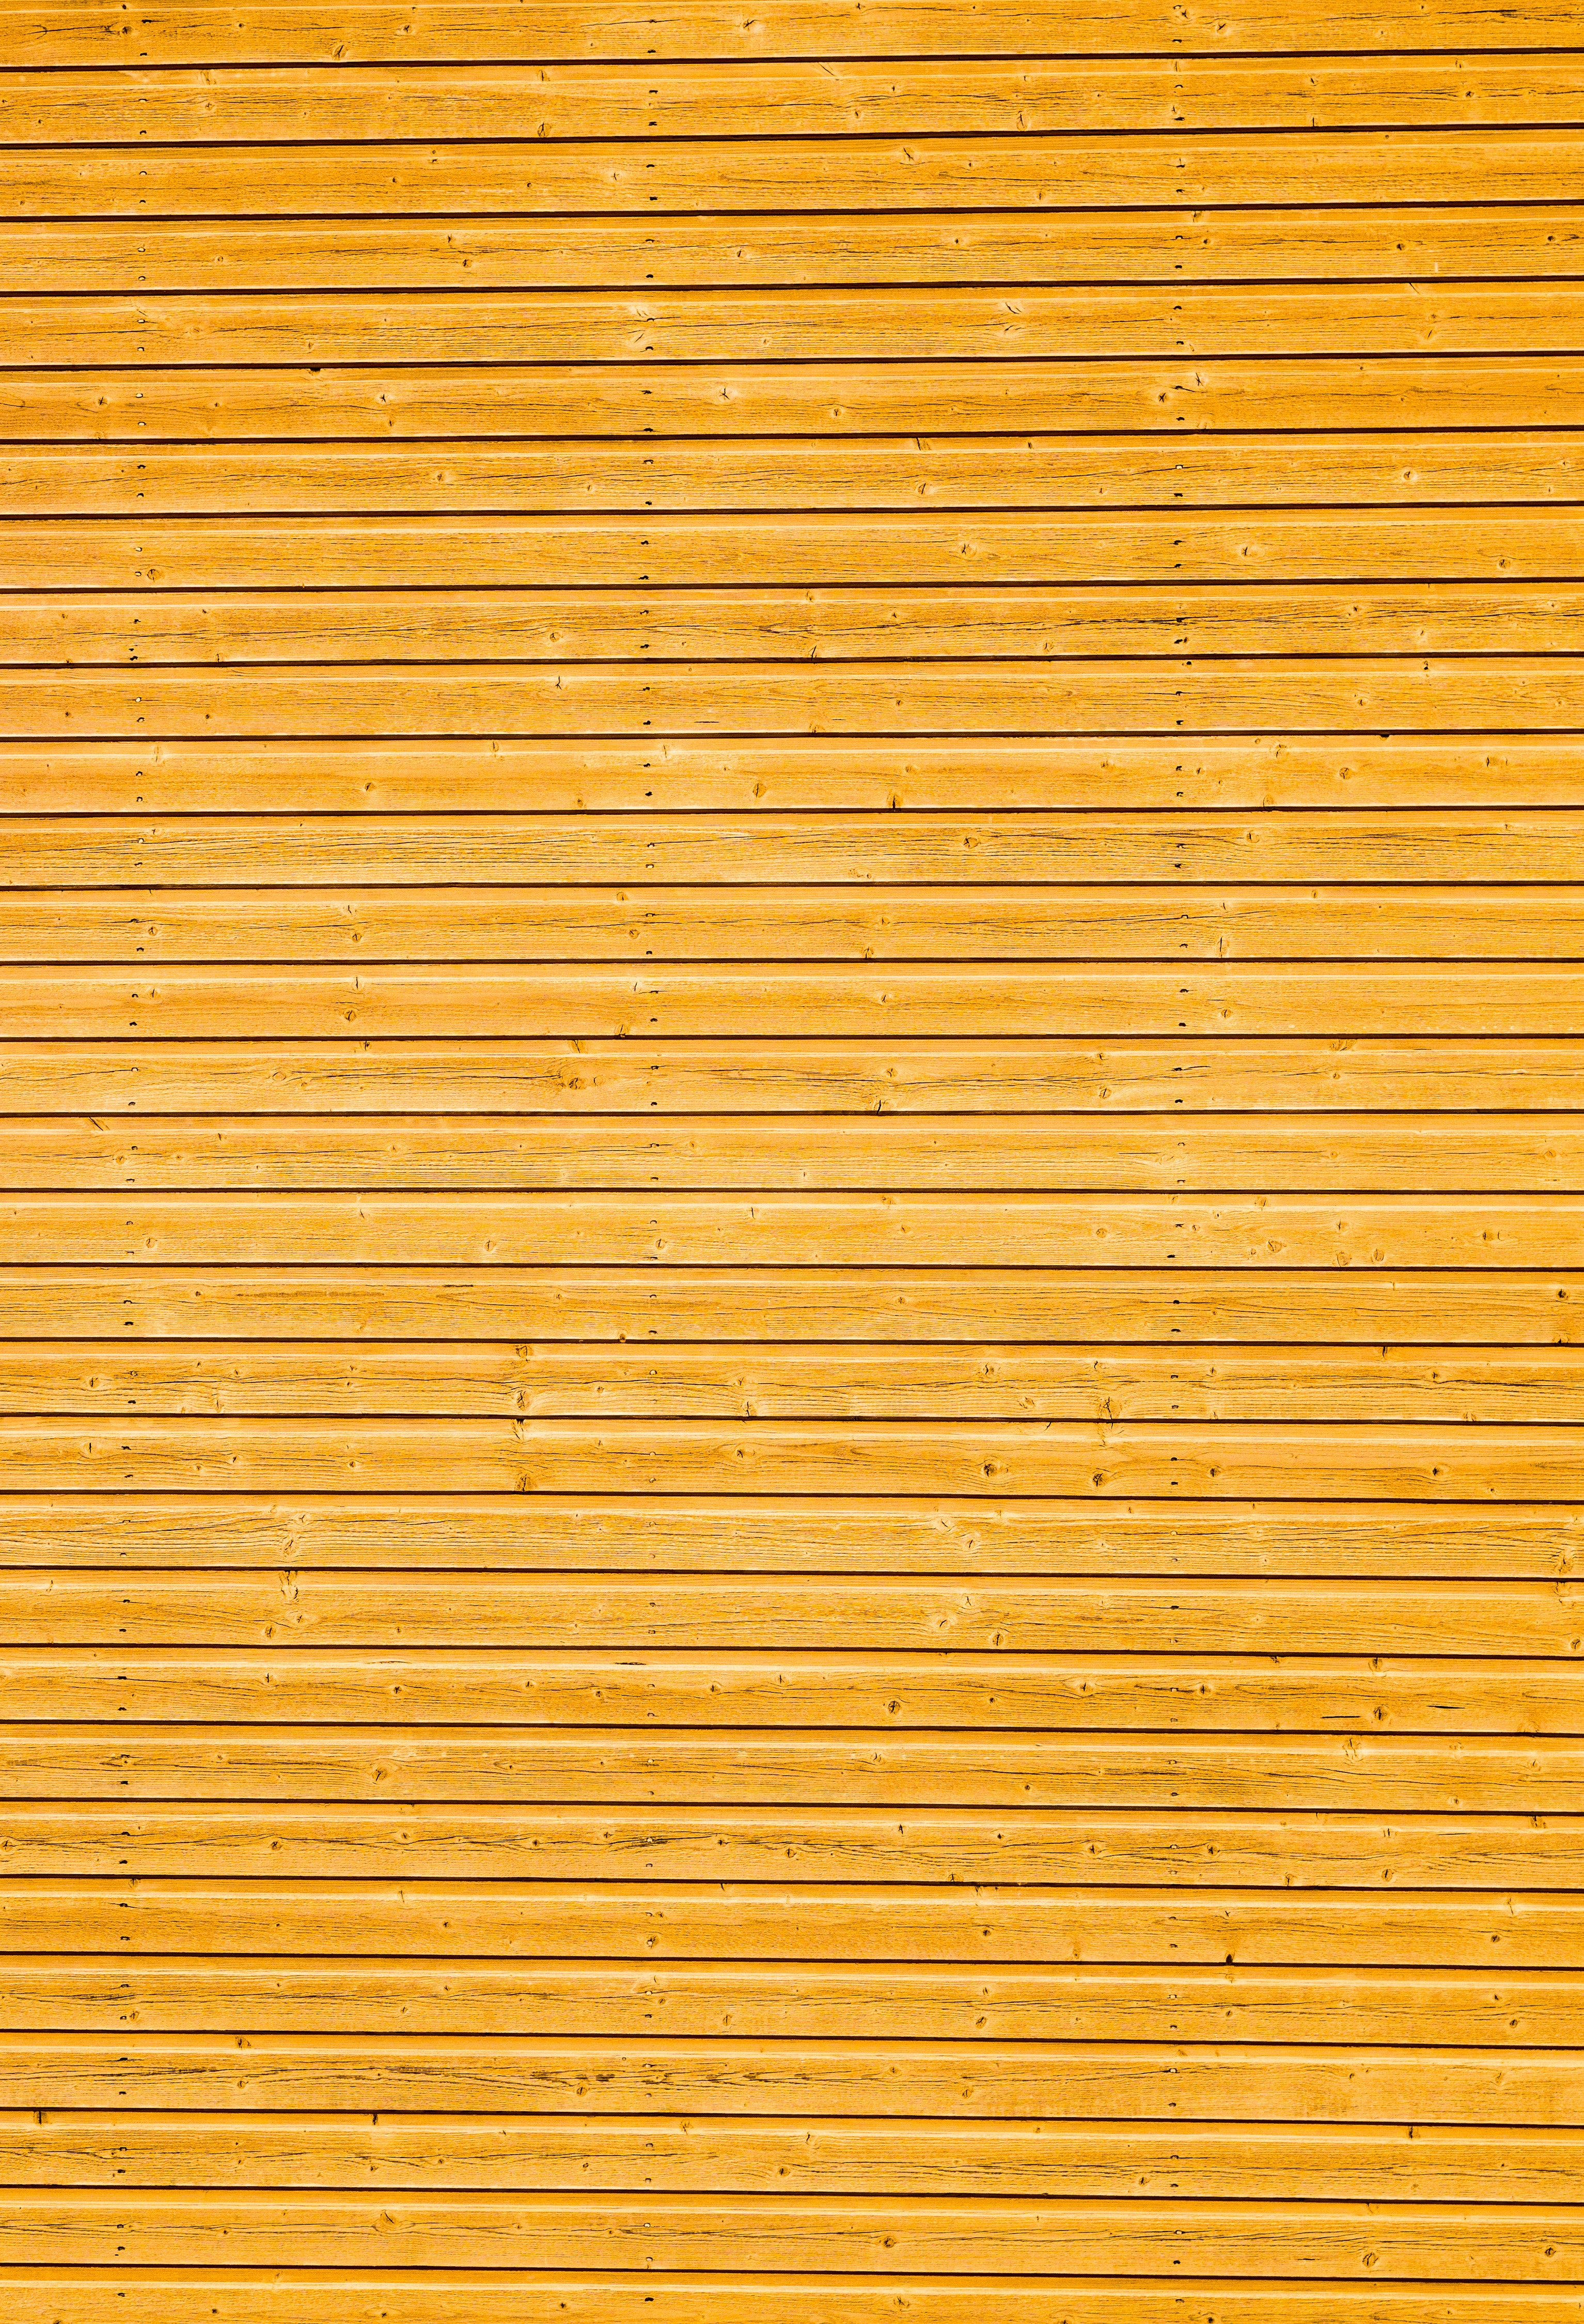 Full Frame Shot of Yellow Shutter, Abstract, Pattern, Wooden, Wood planks, HQ Photo